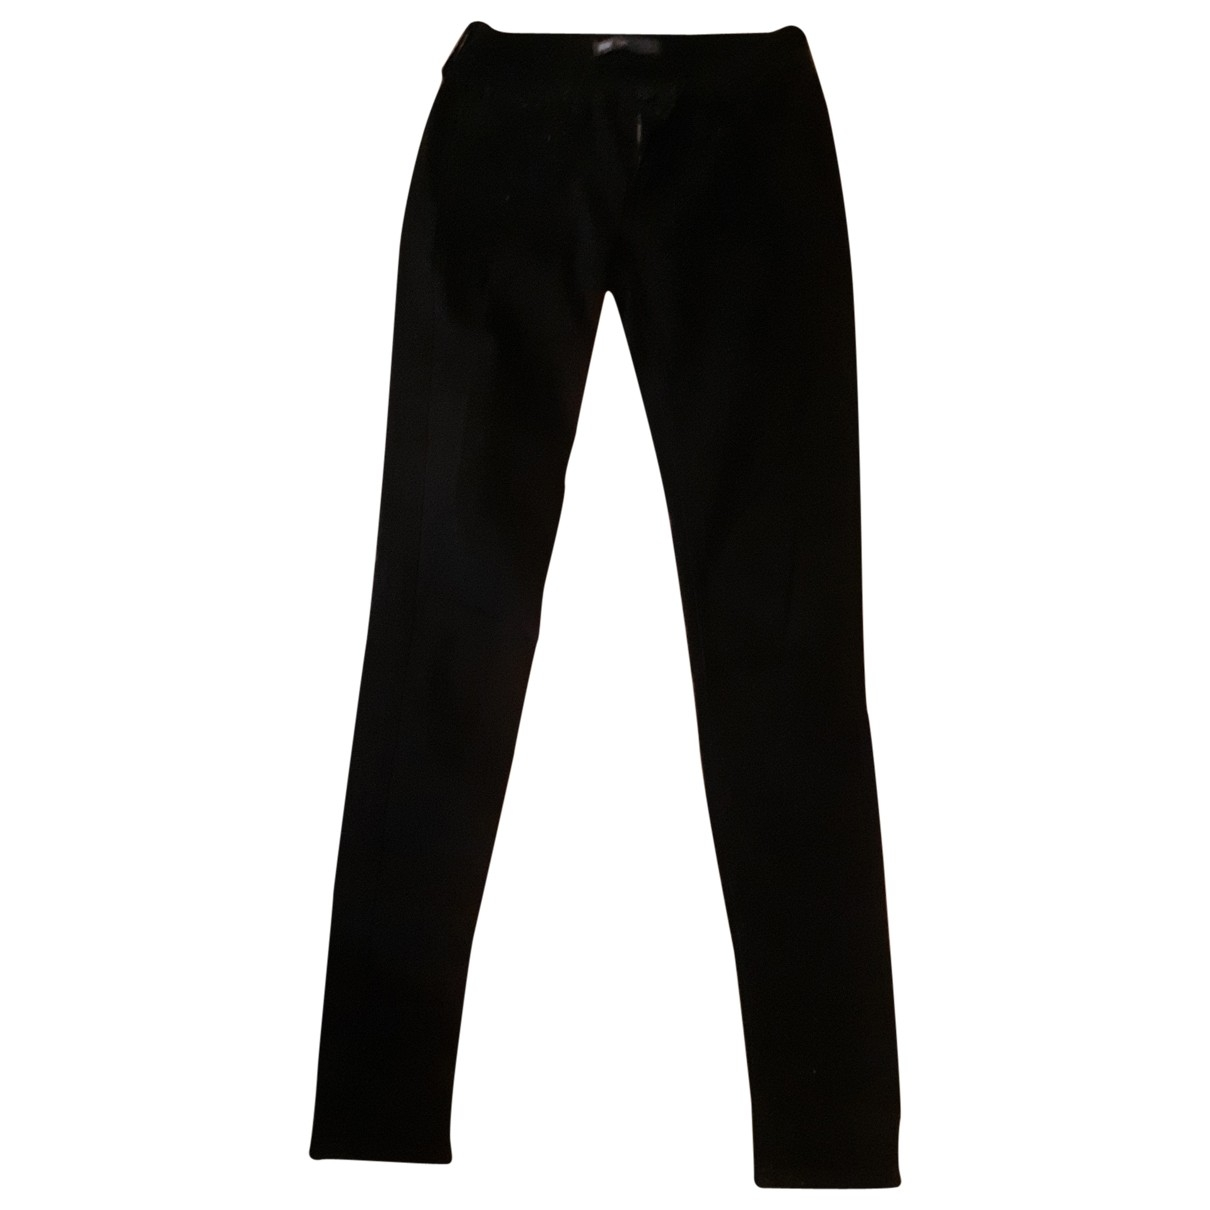 Levi's \N Black Cotton Trousers for Women S International